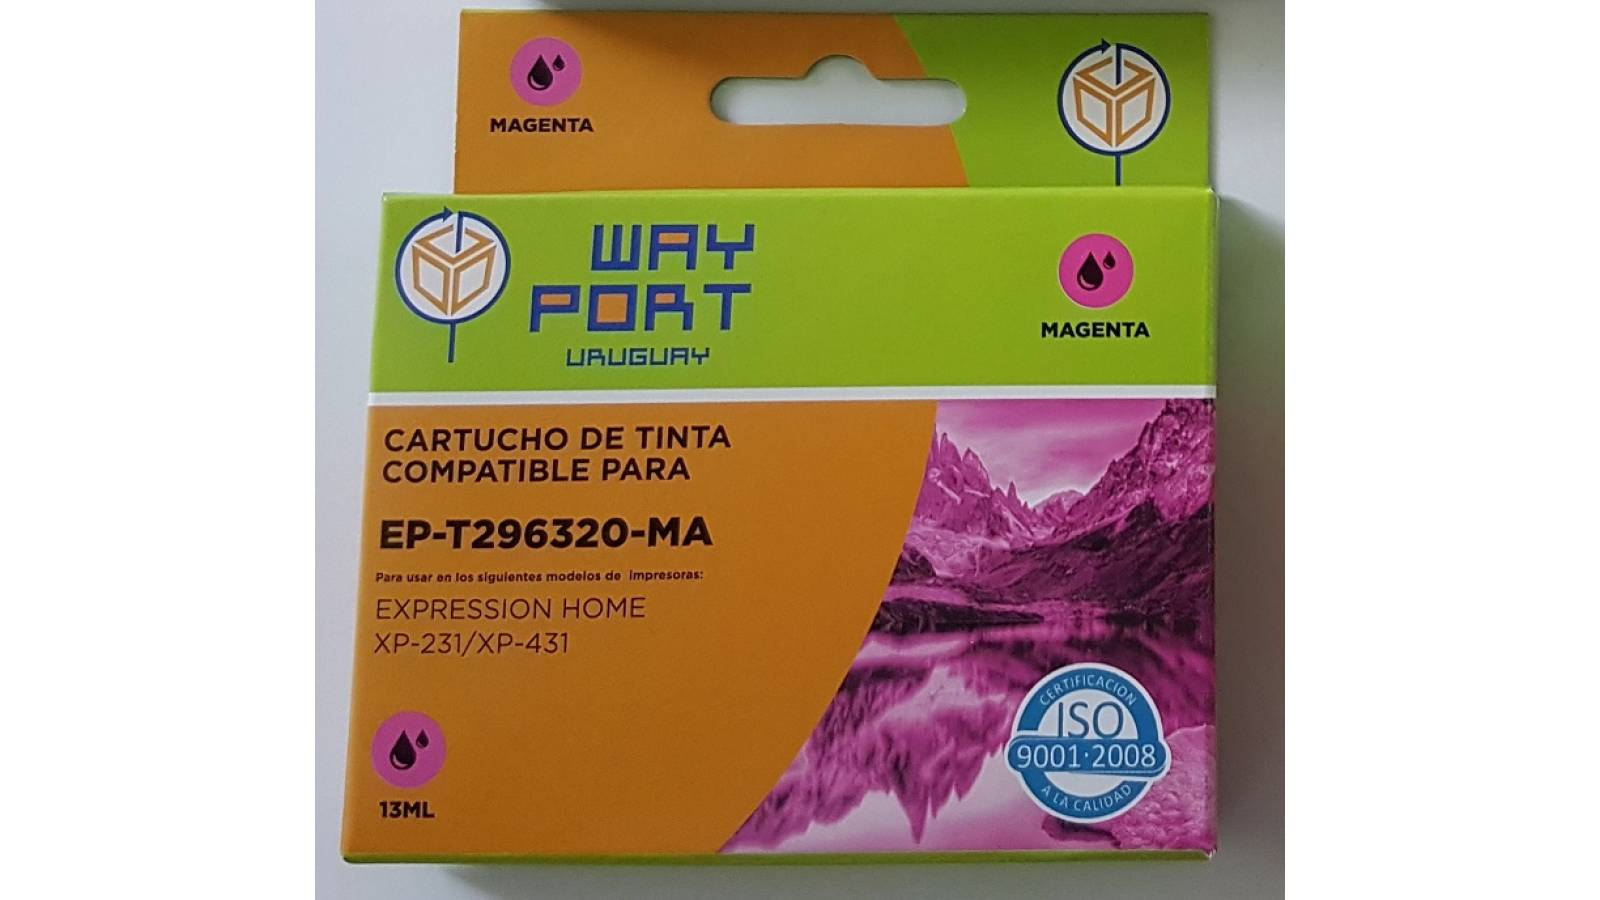 CARTUCHO COMPATIBLE WP PARA EPSON  XP231 / XP431 13ML - MAGENTA